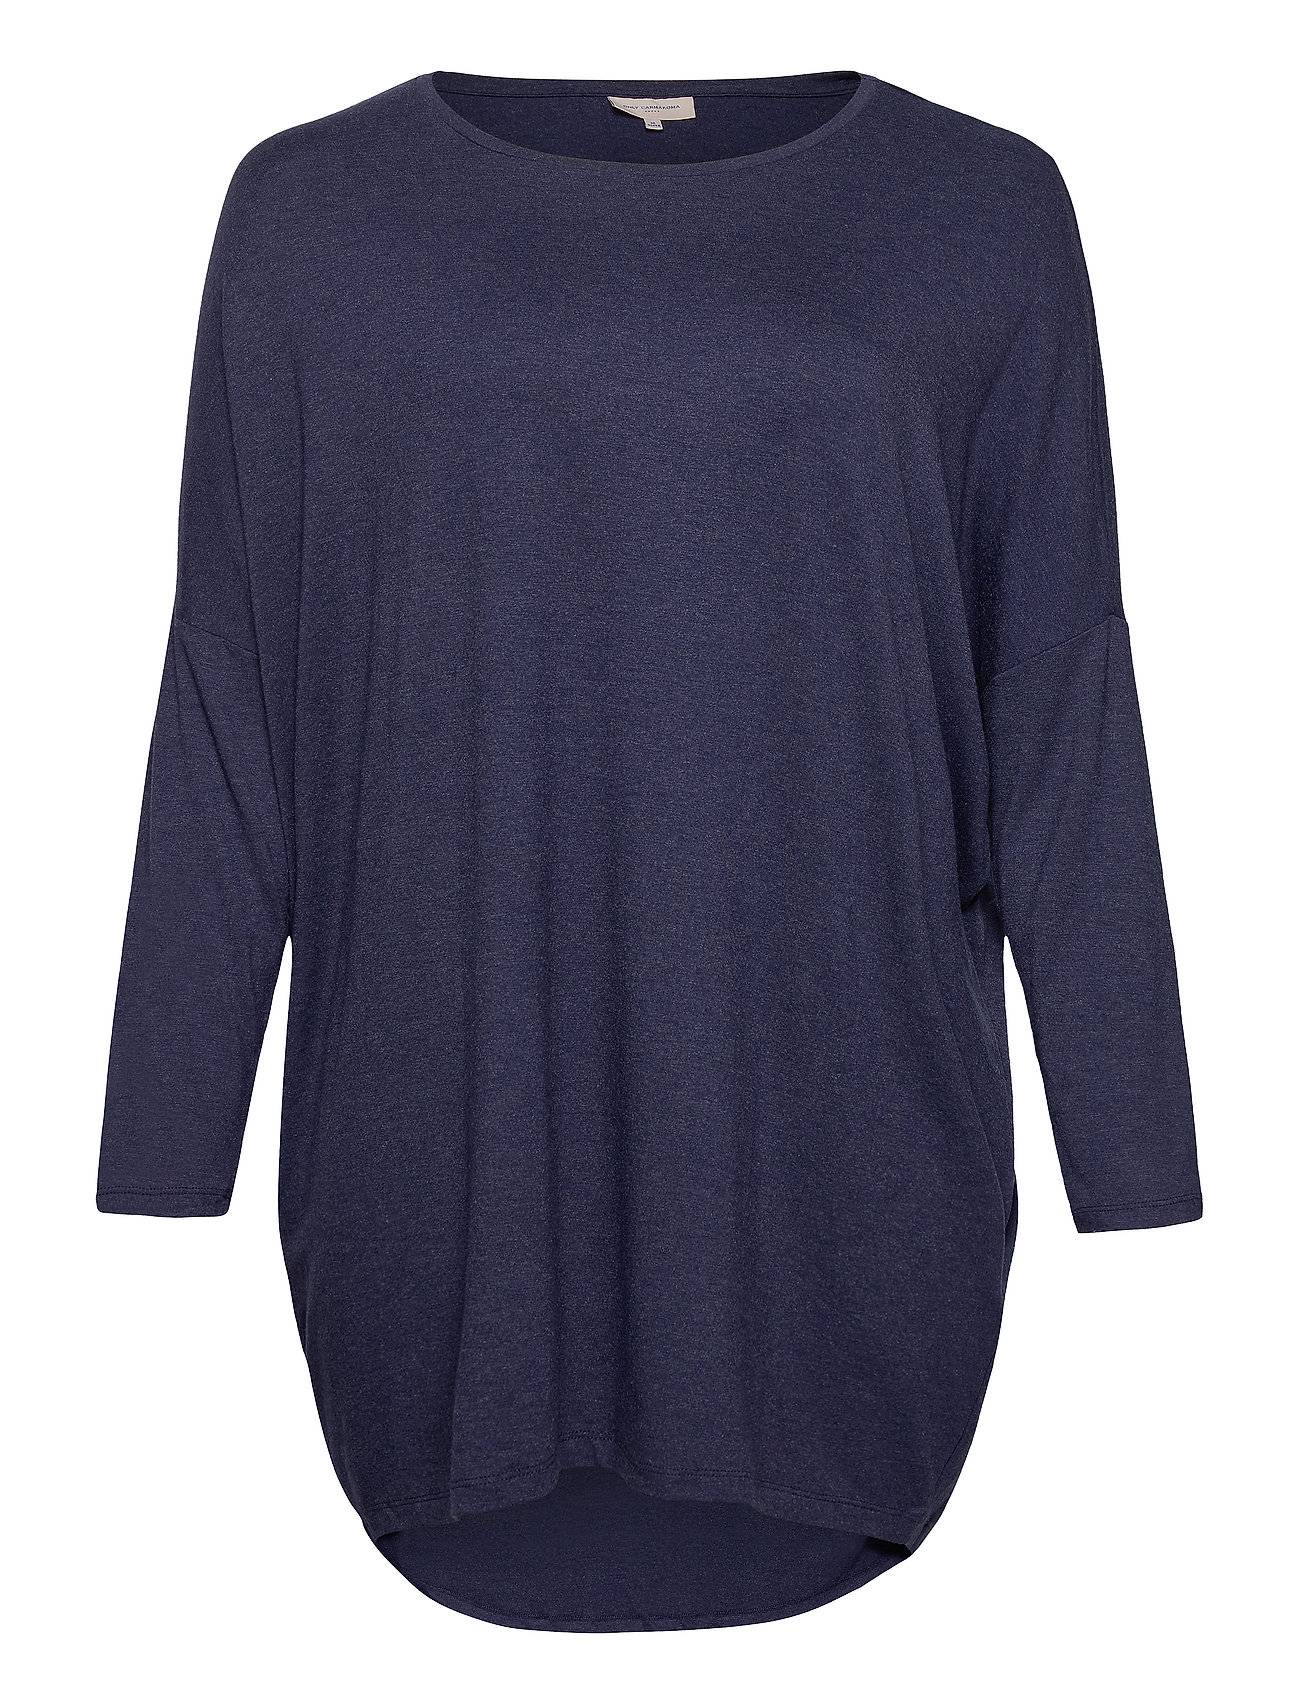 ONLY Carmakoma Carcarma L/S Long Top Noos T-shirts & Tops Long-sleeved Sininen ONLY Carmakoma